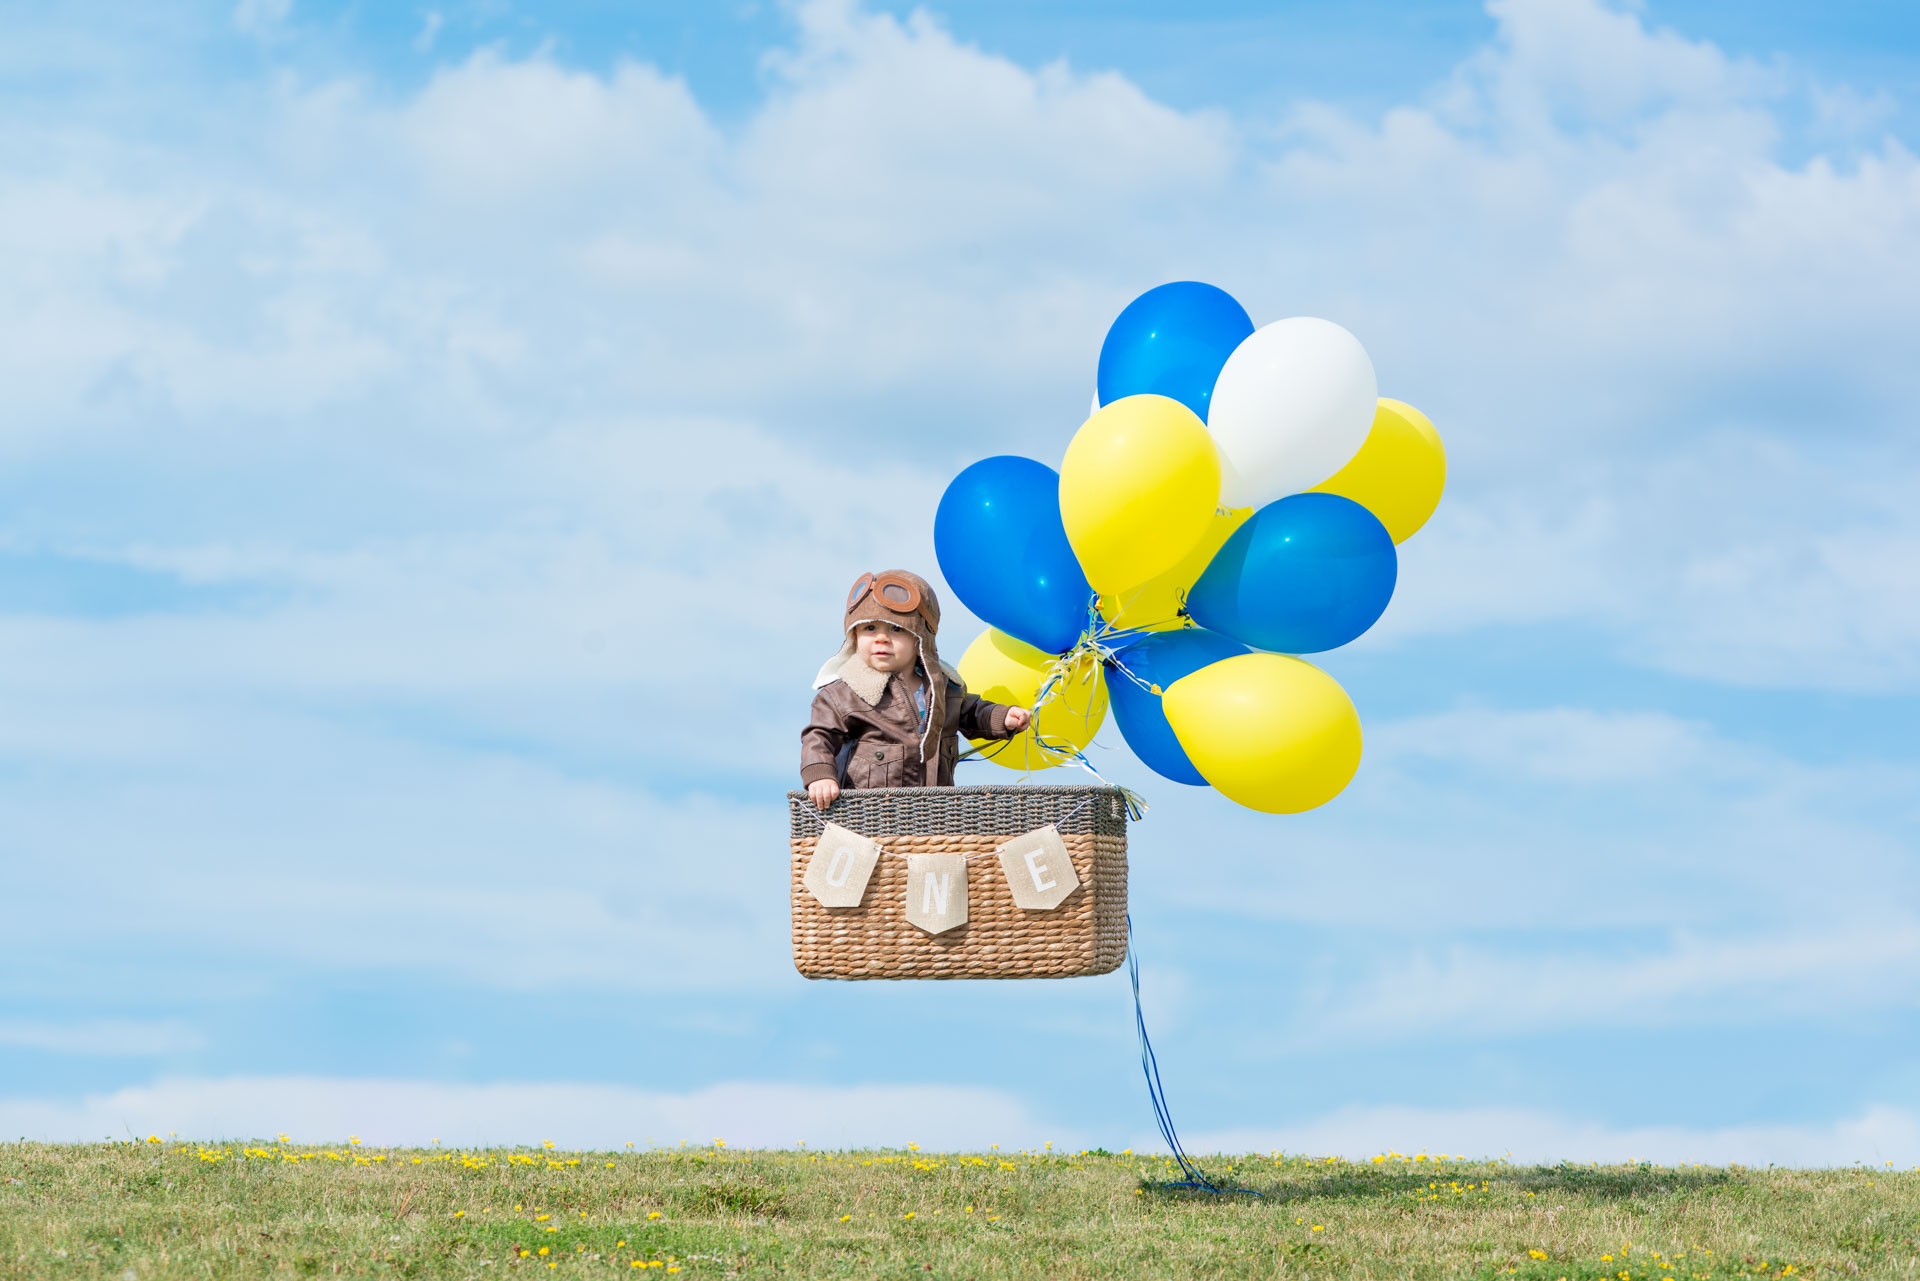 One year photo shoot of little aviator and hot air balloon in Maple Grove by Addie Lane Studios